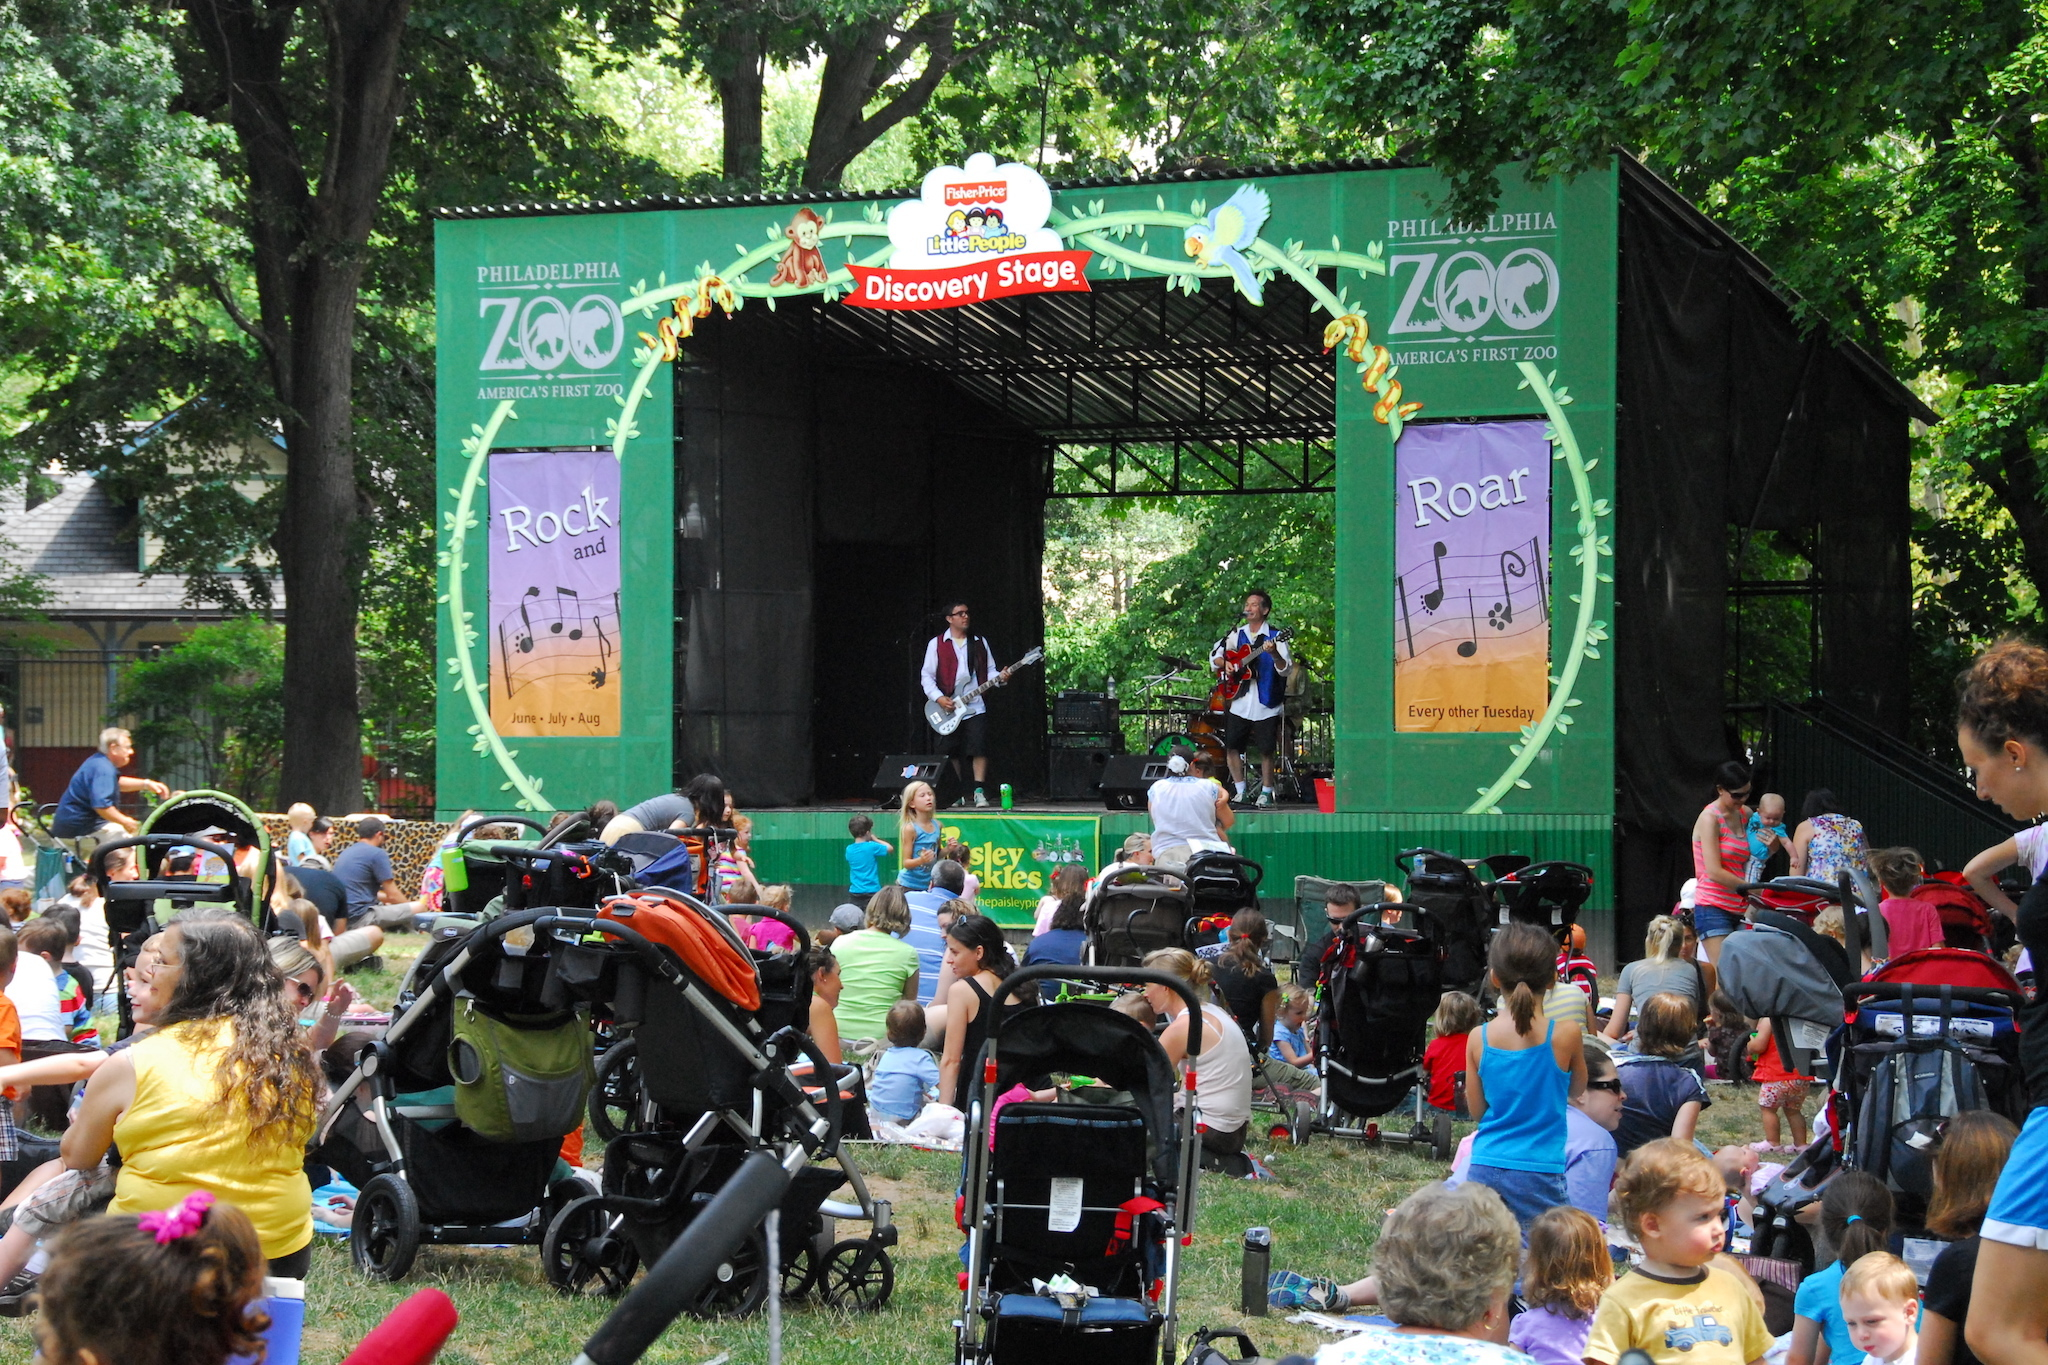 Rock n Roar brings kiddie music festival vibes to the Philadelphia Zoo.